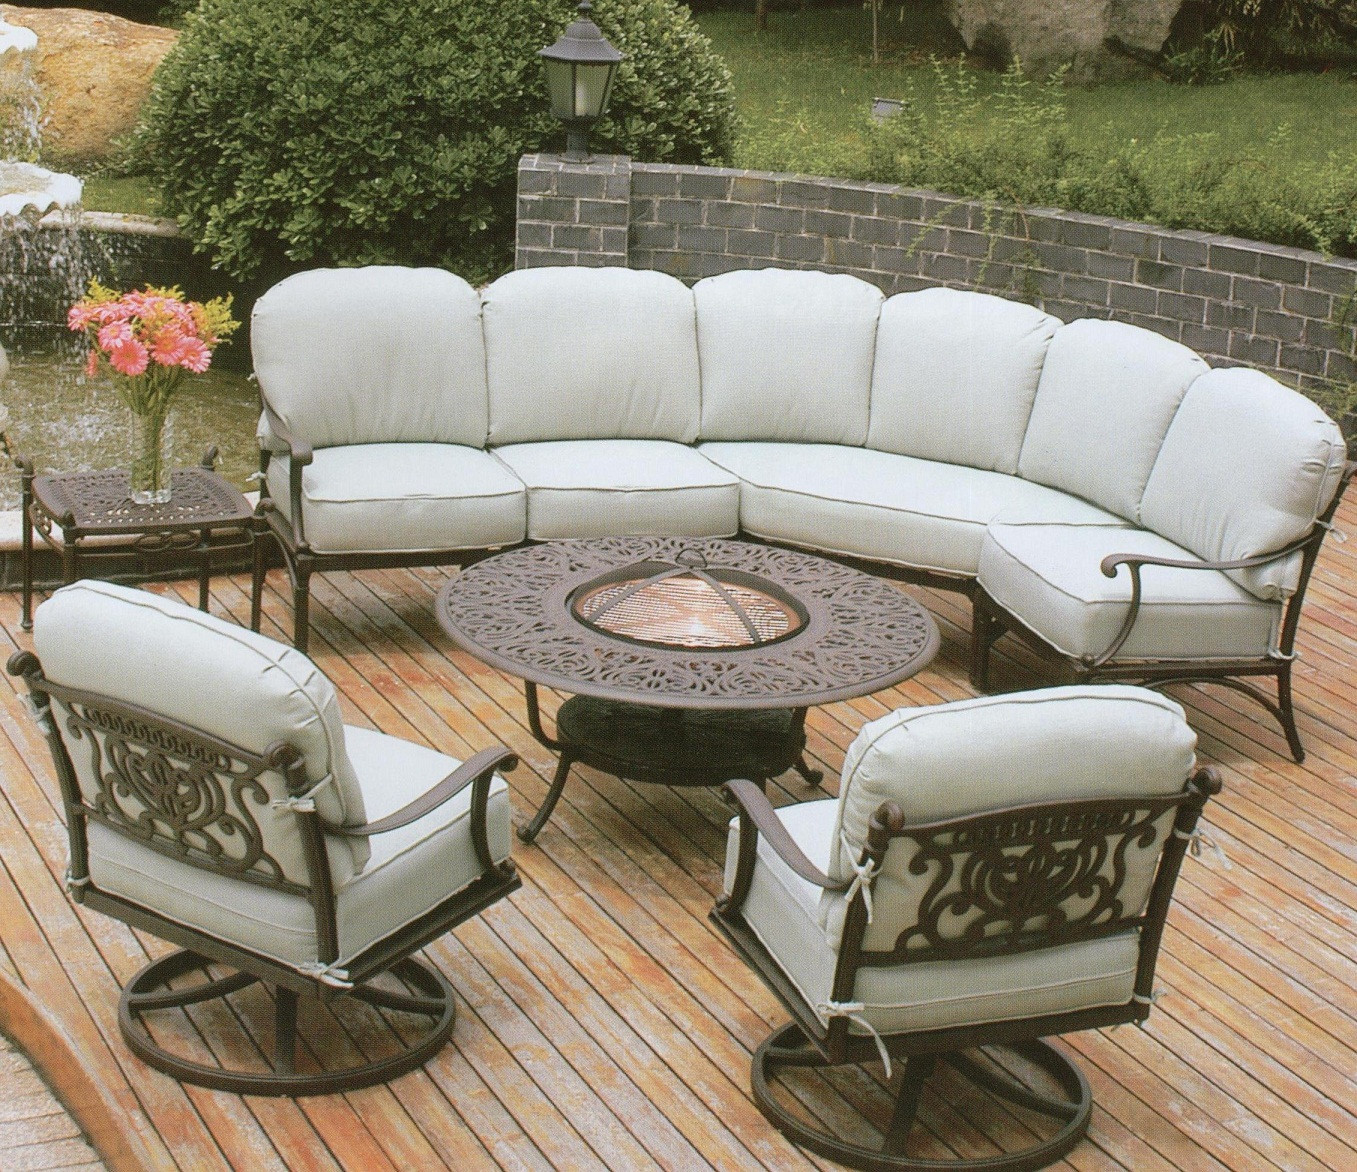 Best ideas about Patio Furniture Clearance Sale . Save or Pin Patio Furniture Sears Clearance Sale Cottage Outdoor Now.